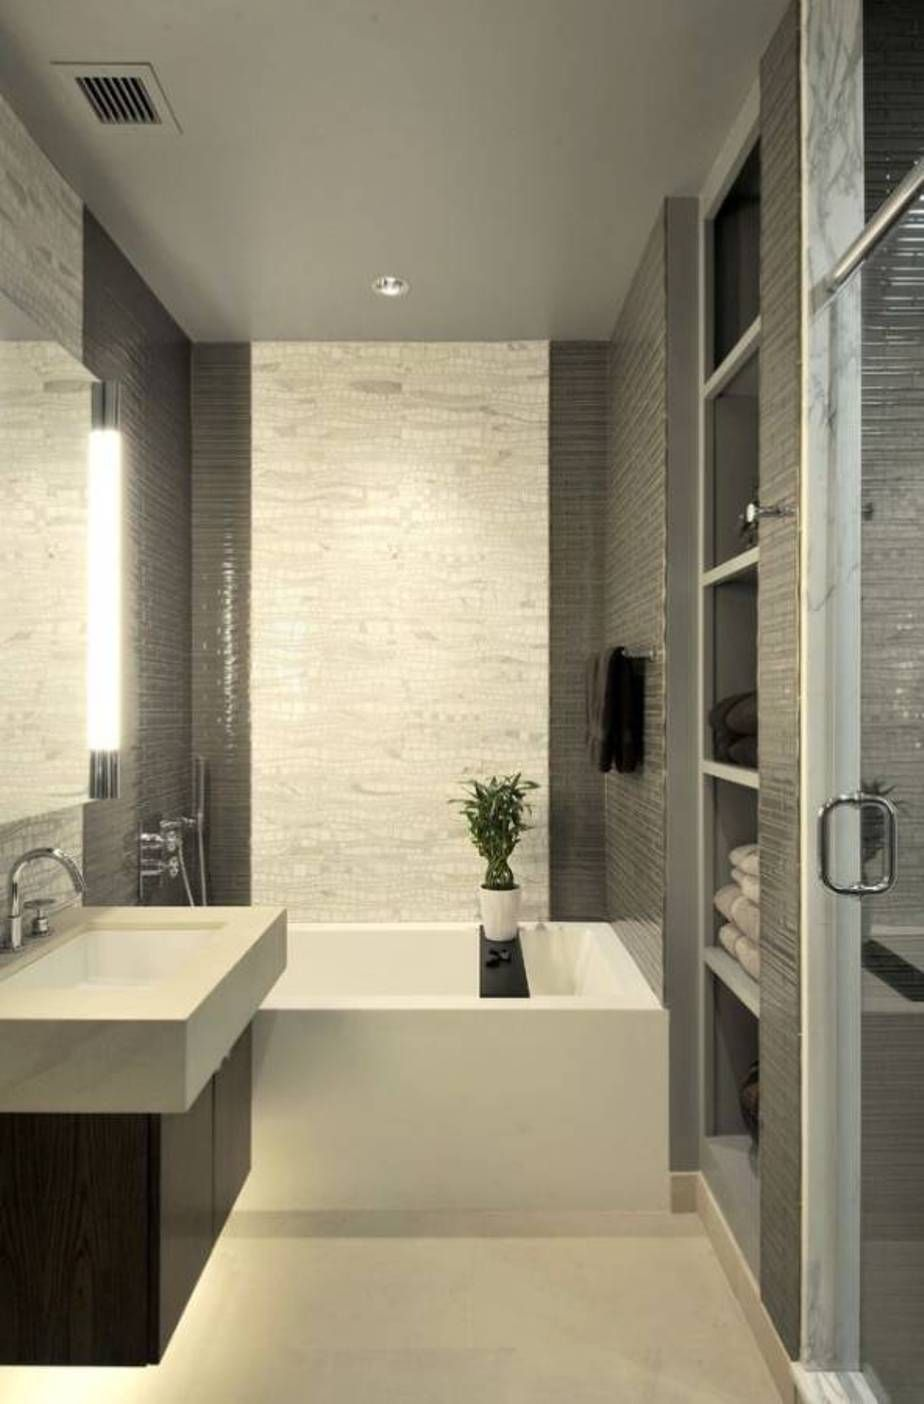 Bathroom modern small bathroom design ideas modern small bathroom design with drop in tub Small bathroom ideas with pictures